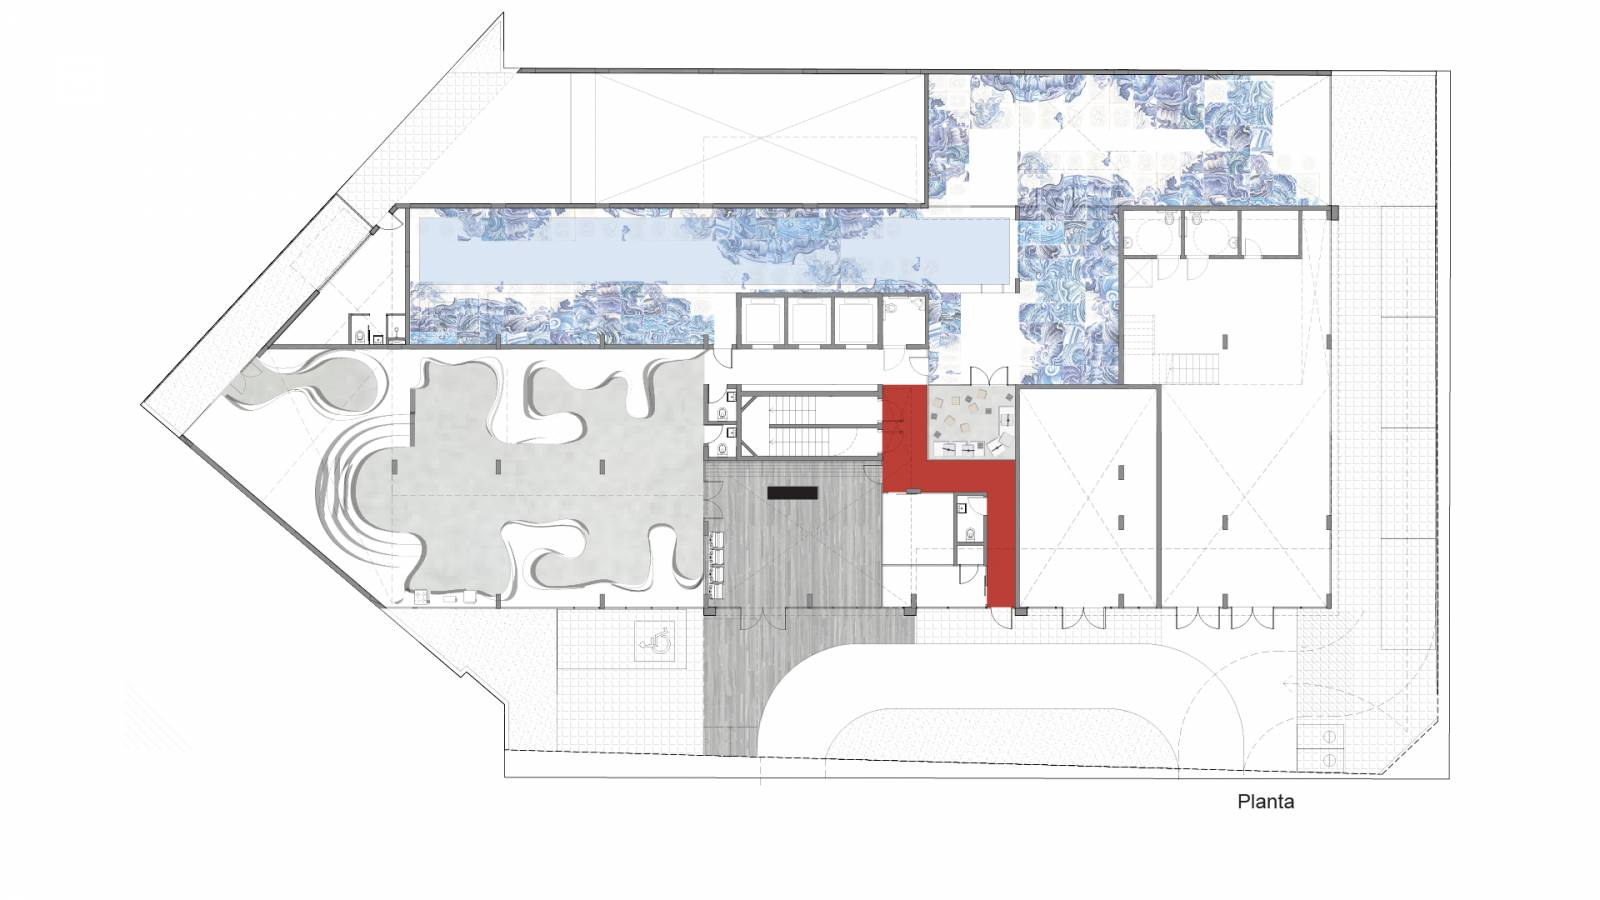 GROUND LEVEL PLAN - Fiandeiras Apartments - SPOL Architects